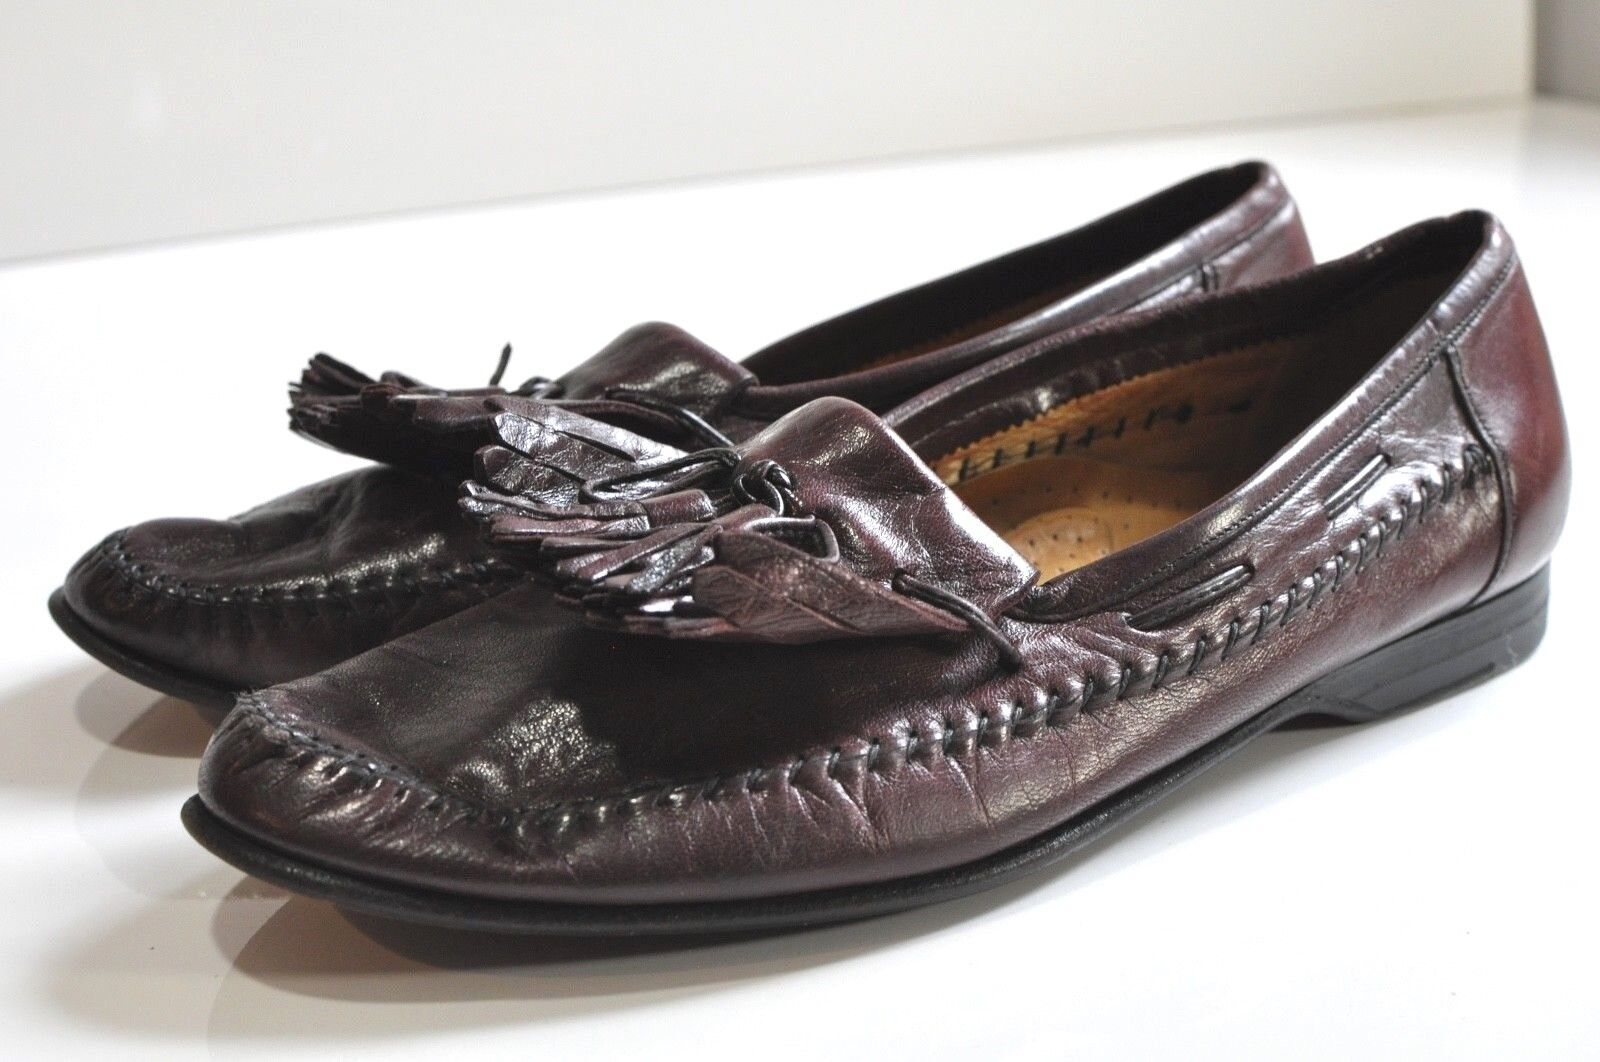 Santoni Mens leather loafers size 9 made in